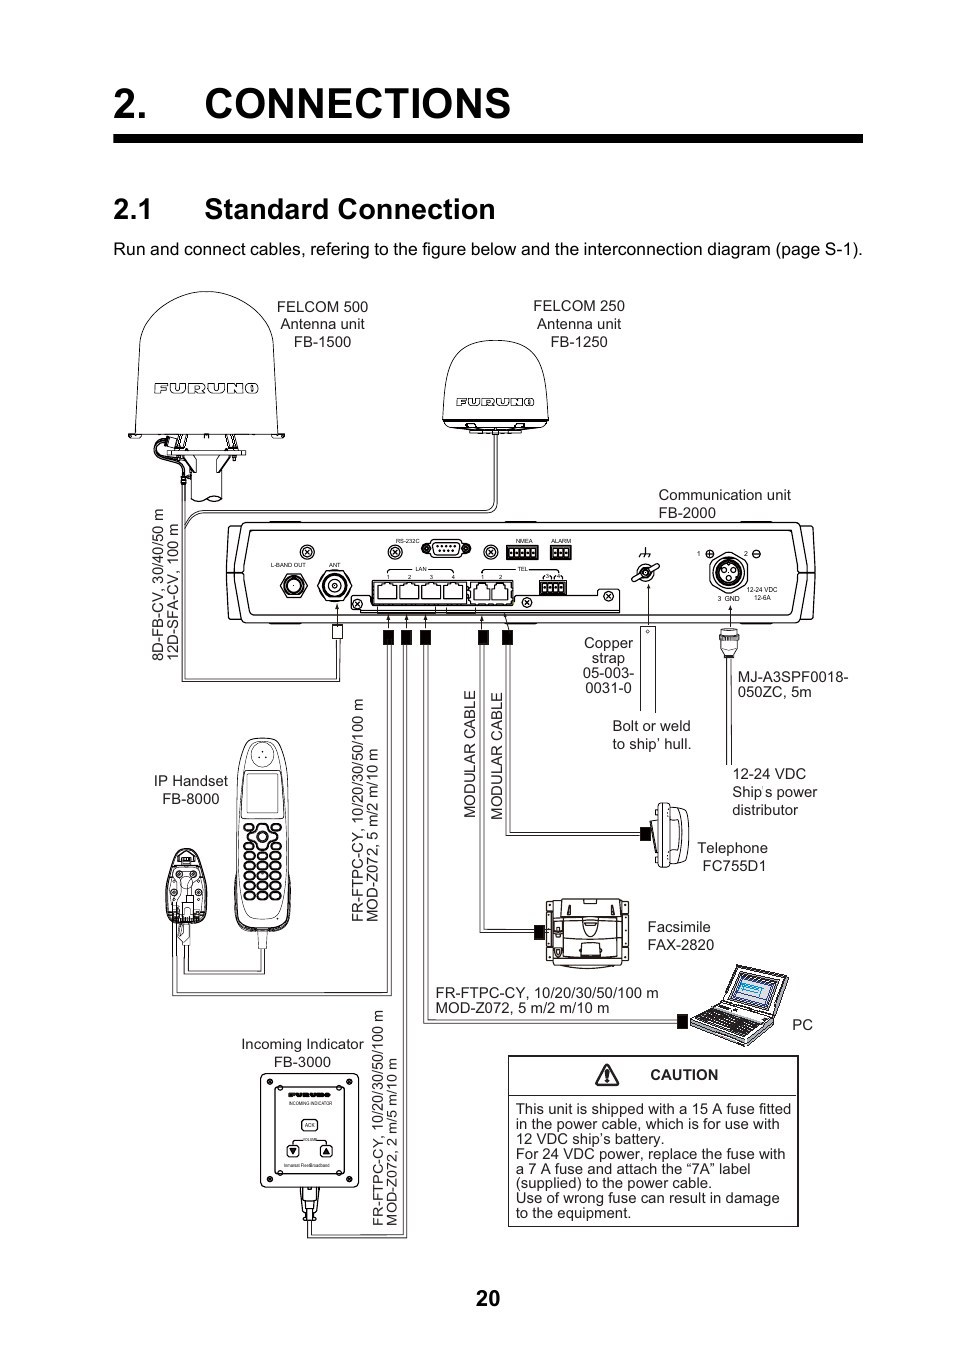 Furuno Felcom 19 Wiring Diagram Explained Diagrams Connections 1 Standard Connection 250 User Manual